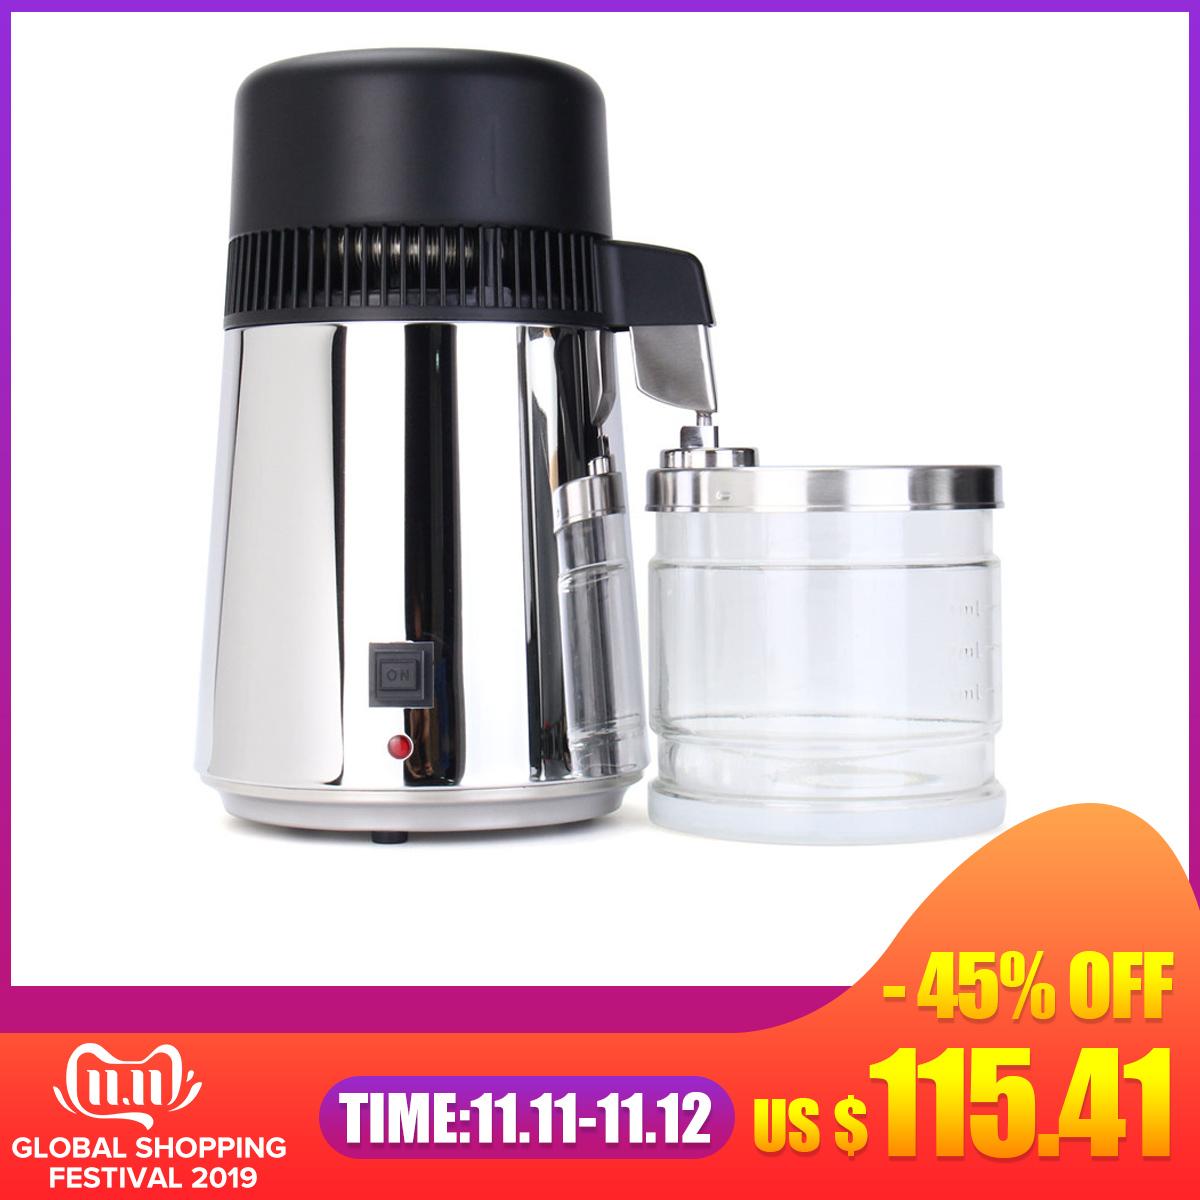 750W 4L 304 Stainless Steel Housing Use Capacity Pure Water Distiller Purifier Container Filter Distilled Water Device 110V/220V